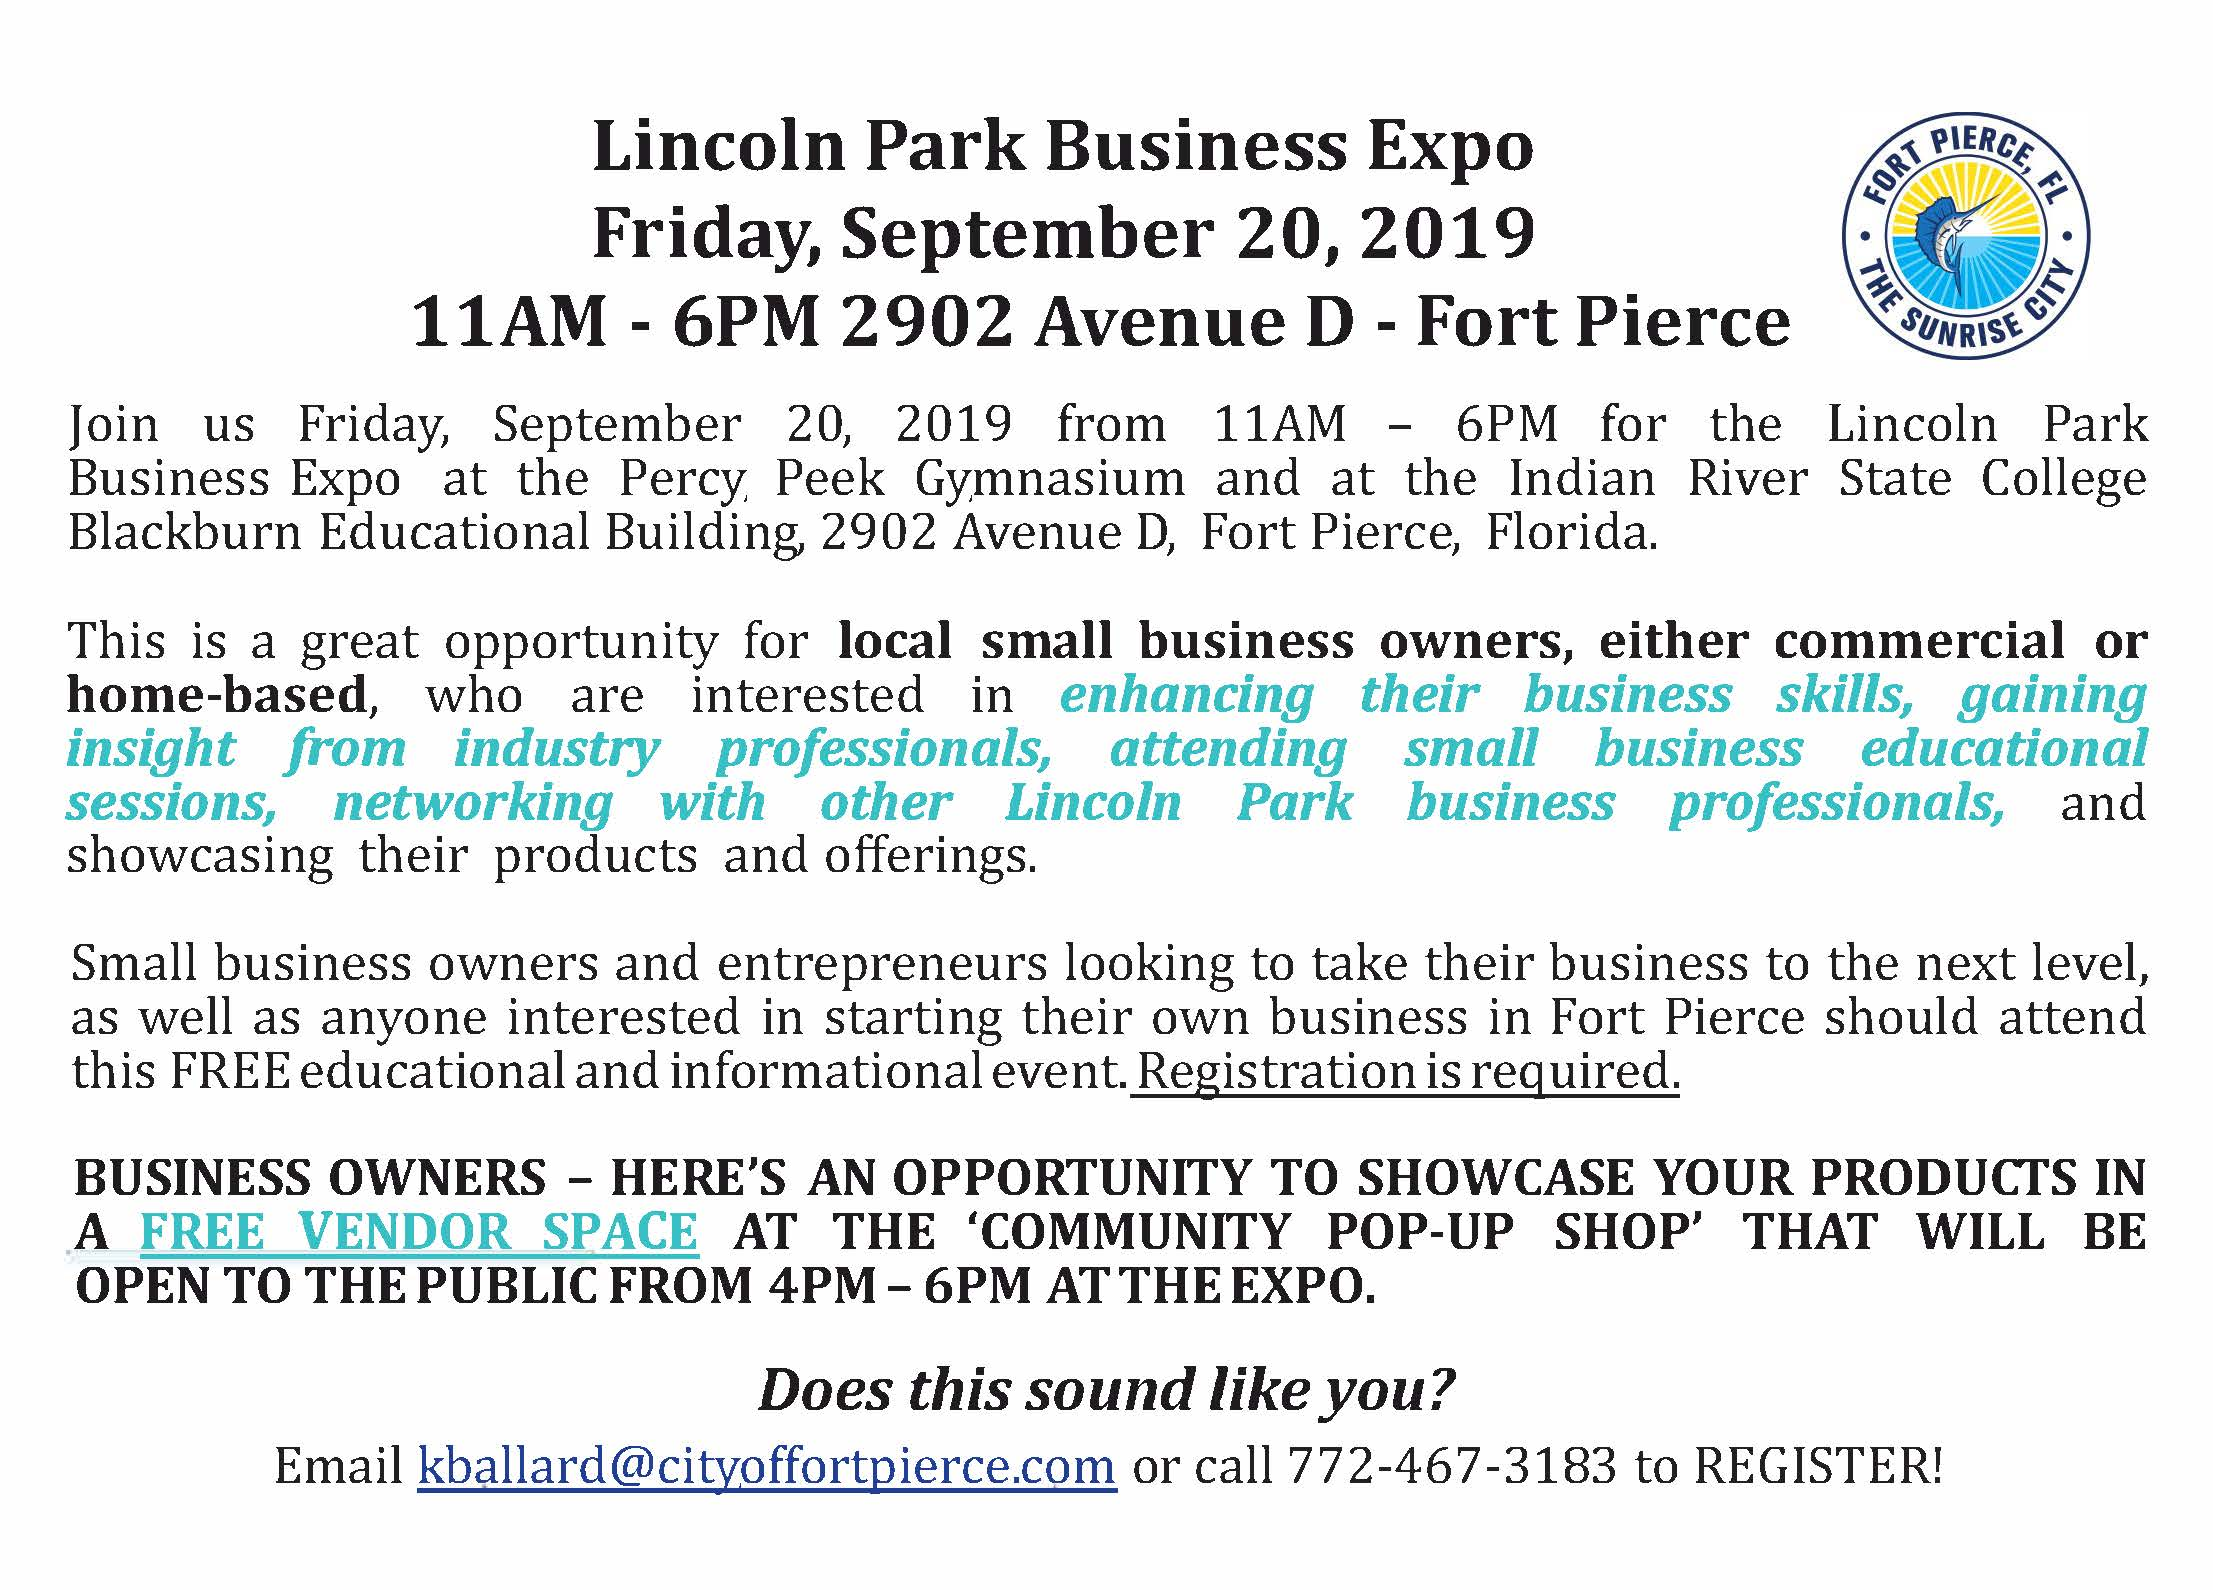 2019 Lincoln Park Business Expo 9.20.2019